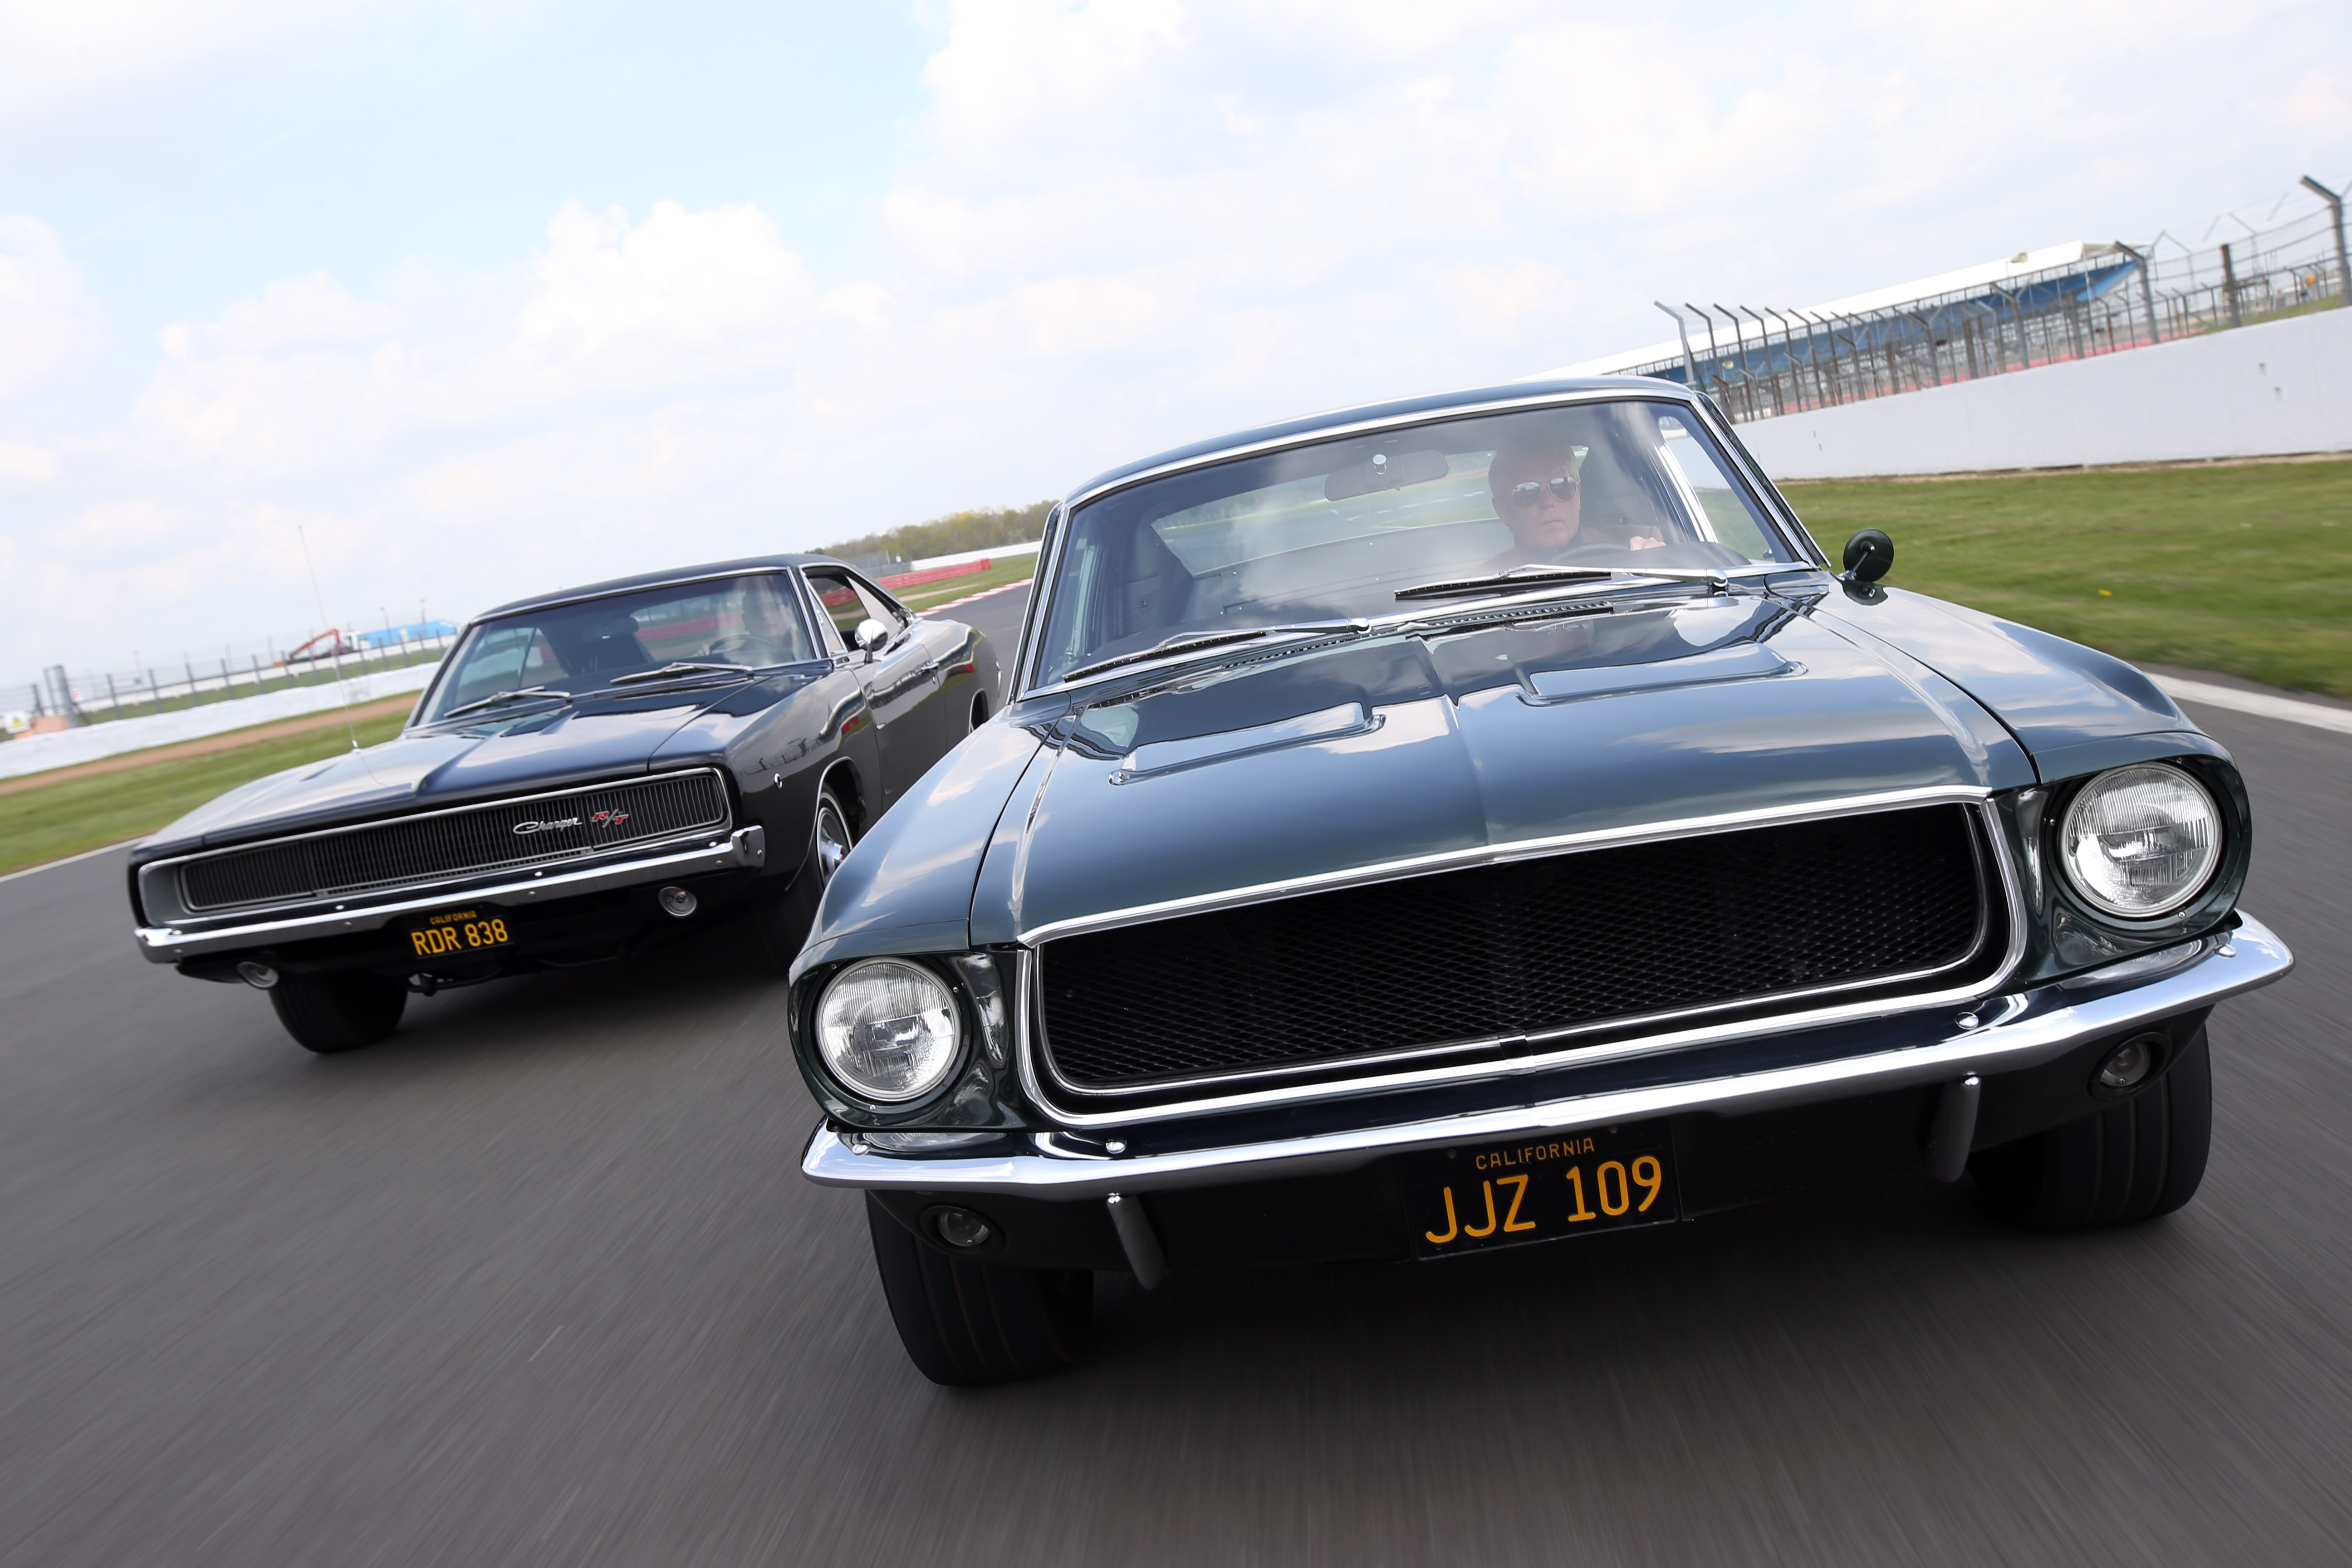 : The Dodge Charger and Ford Mustang power down the Silverstone straights